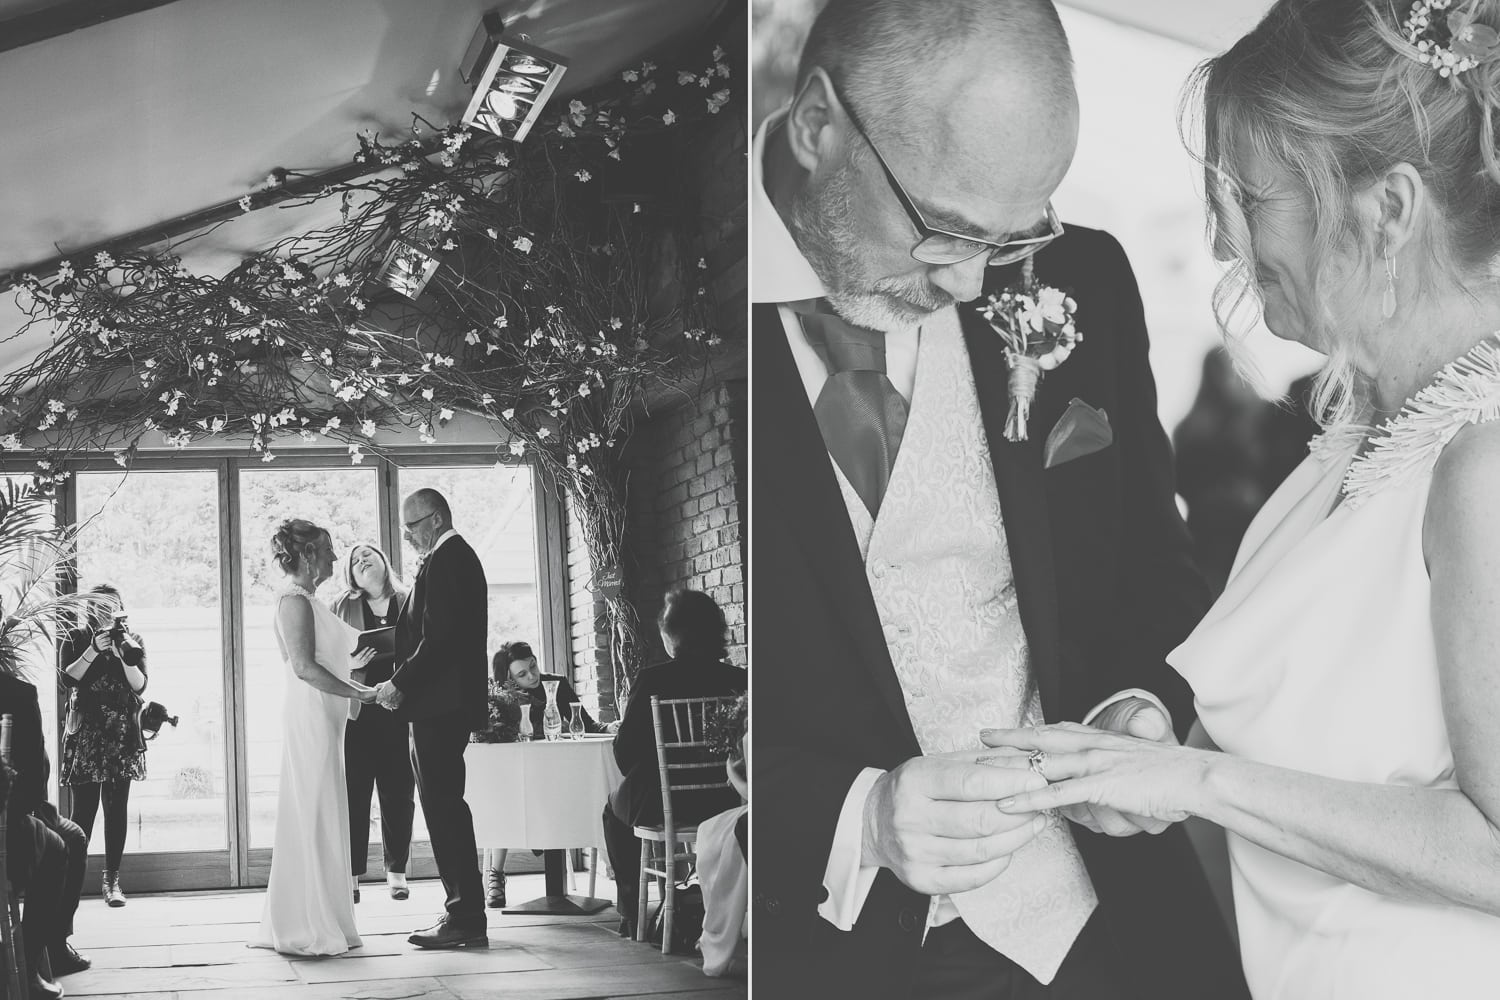 Newton Hall, marriage vows, exchanging rings